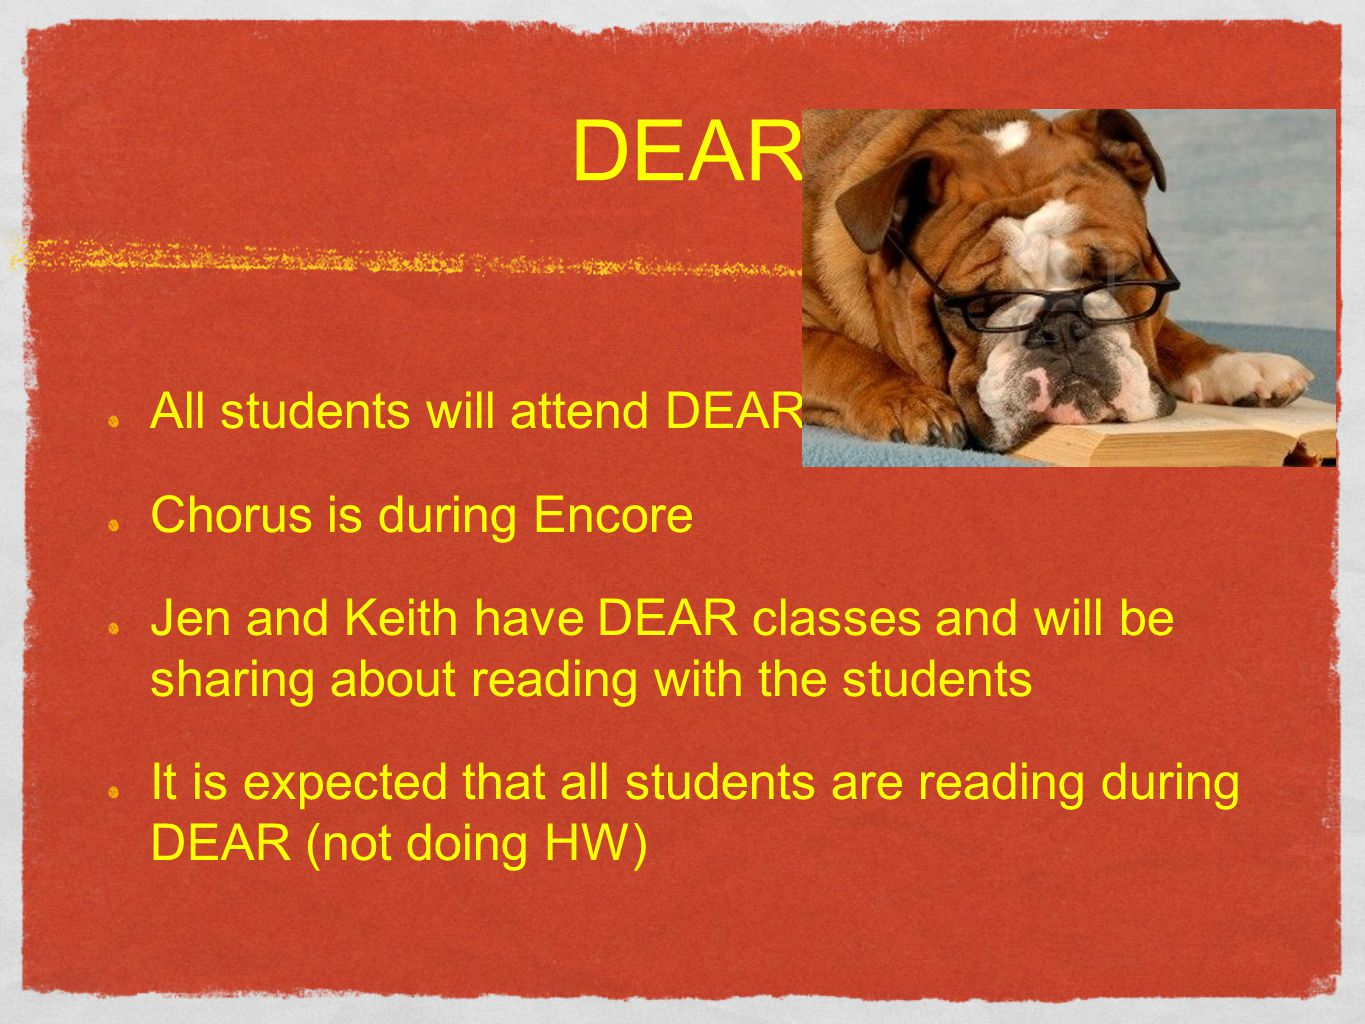 DEAR All students will attend DEAR Chorus is during Encore Jen and Keith have DEAR classes and will be sharing about reading with the students It is expected that all students are reading during DEAR (not doing HW)